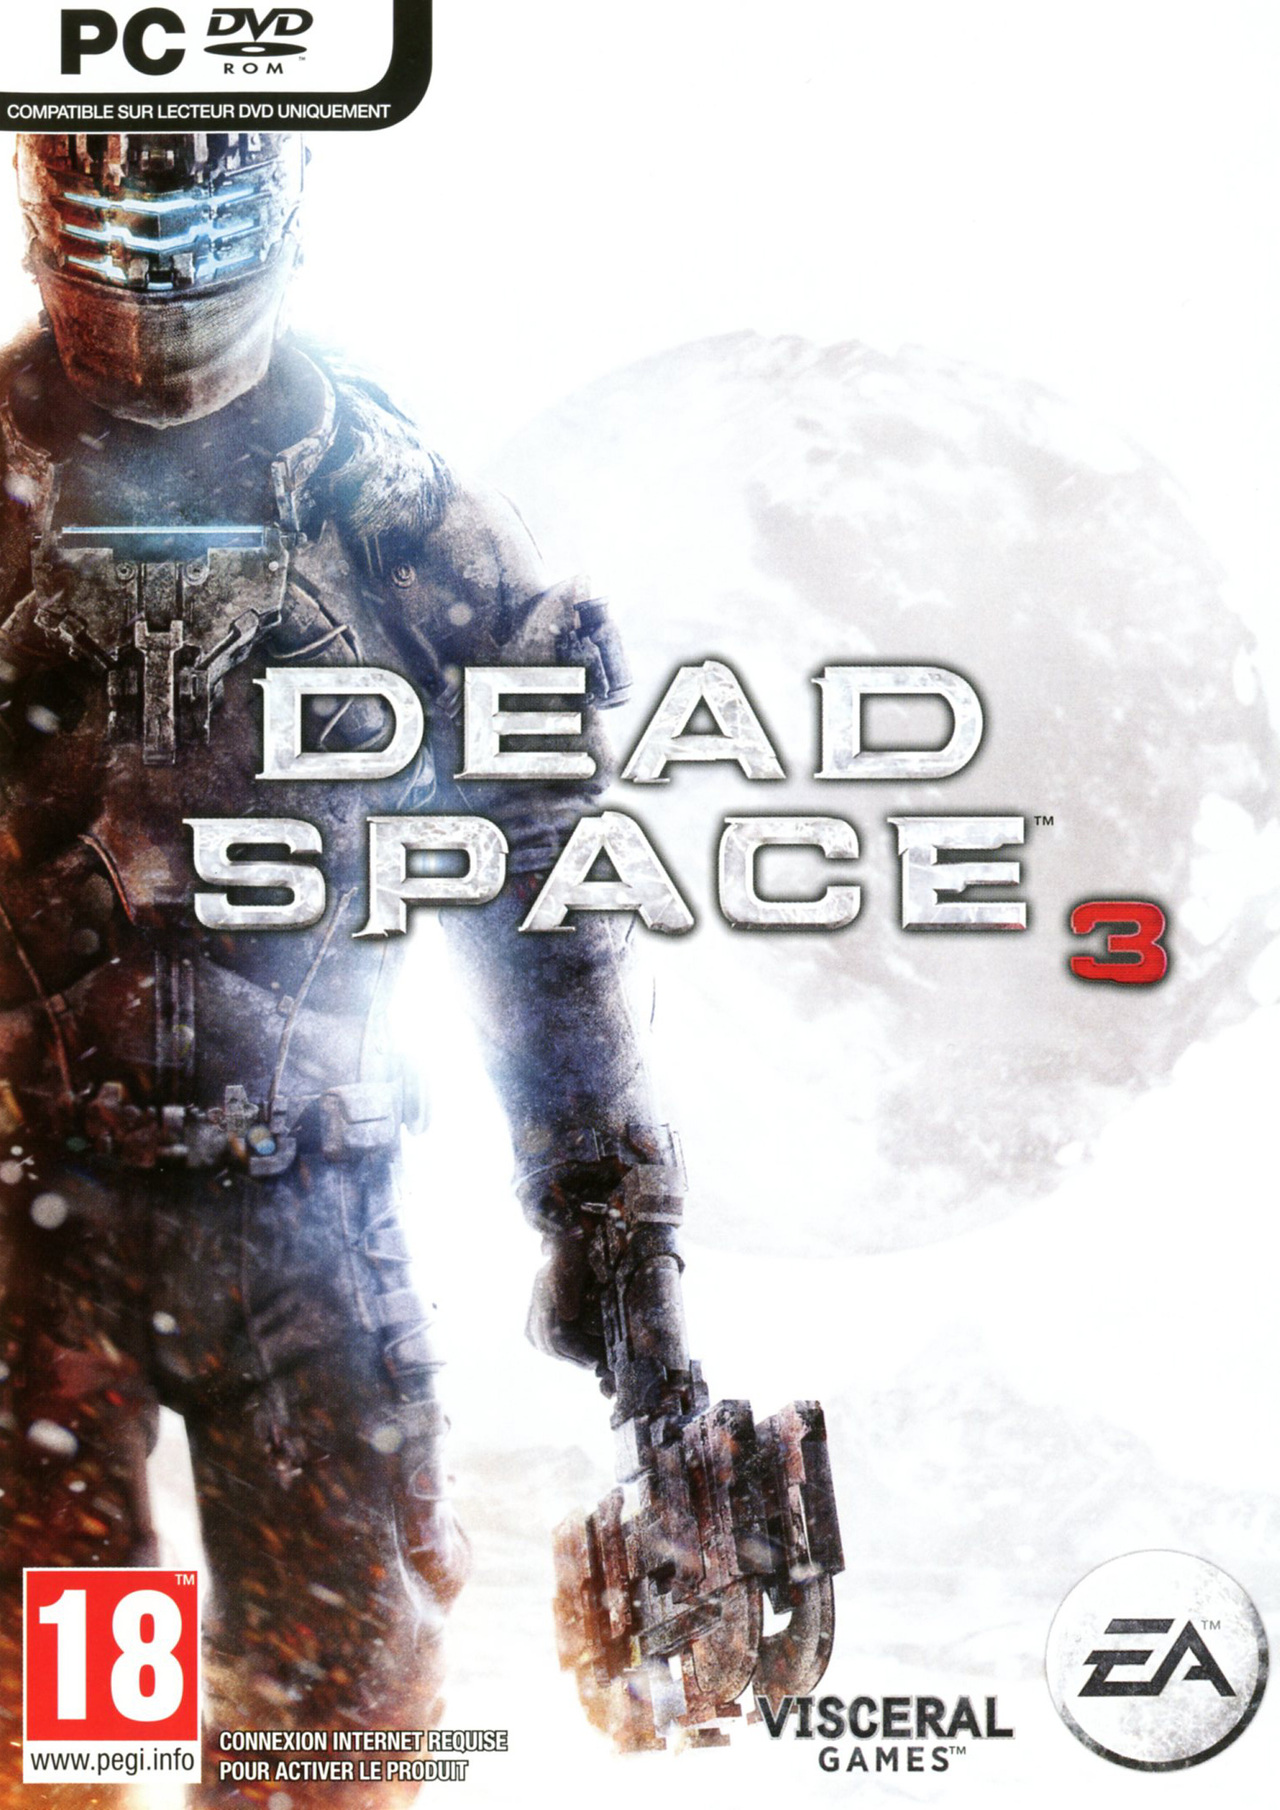 Dead Space 3 Xbox Ps3 Ps4 Pc jtag rgh dvd iso Xbox360 Wii Nintendo Mac Linux